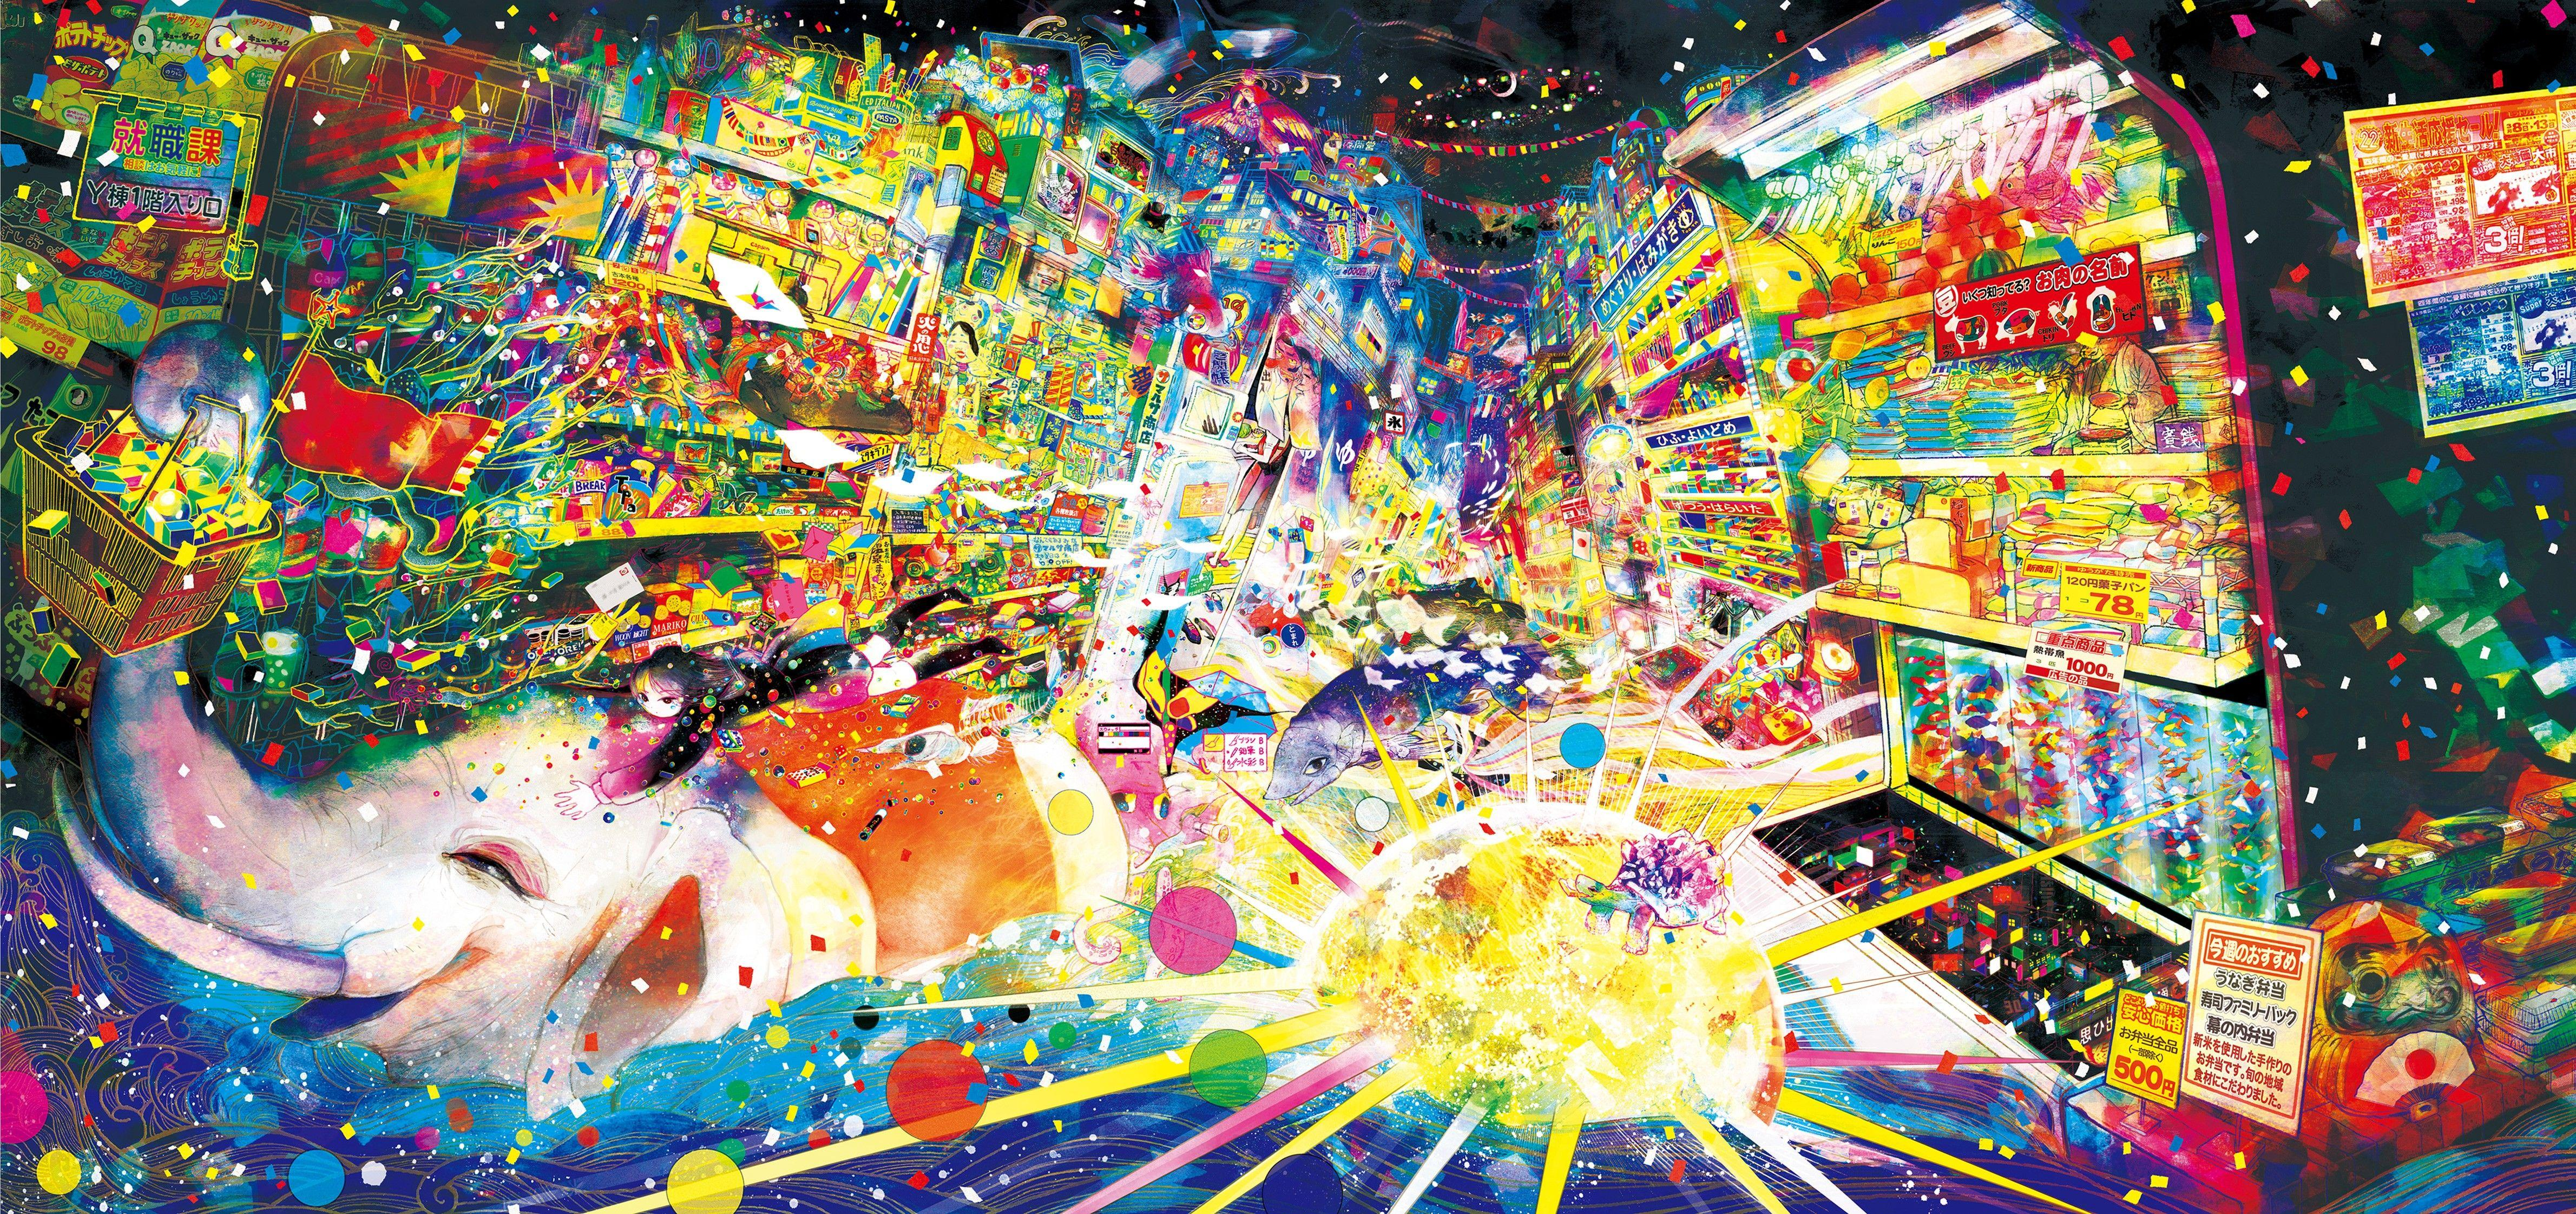 Colorful Trippy Desktop Wallpaper Hd Pics Backgrounds Psychedelic